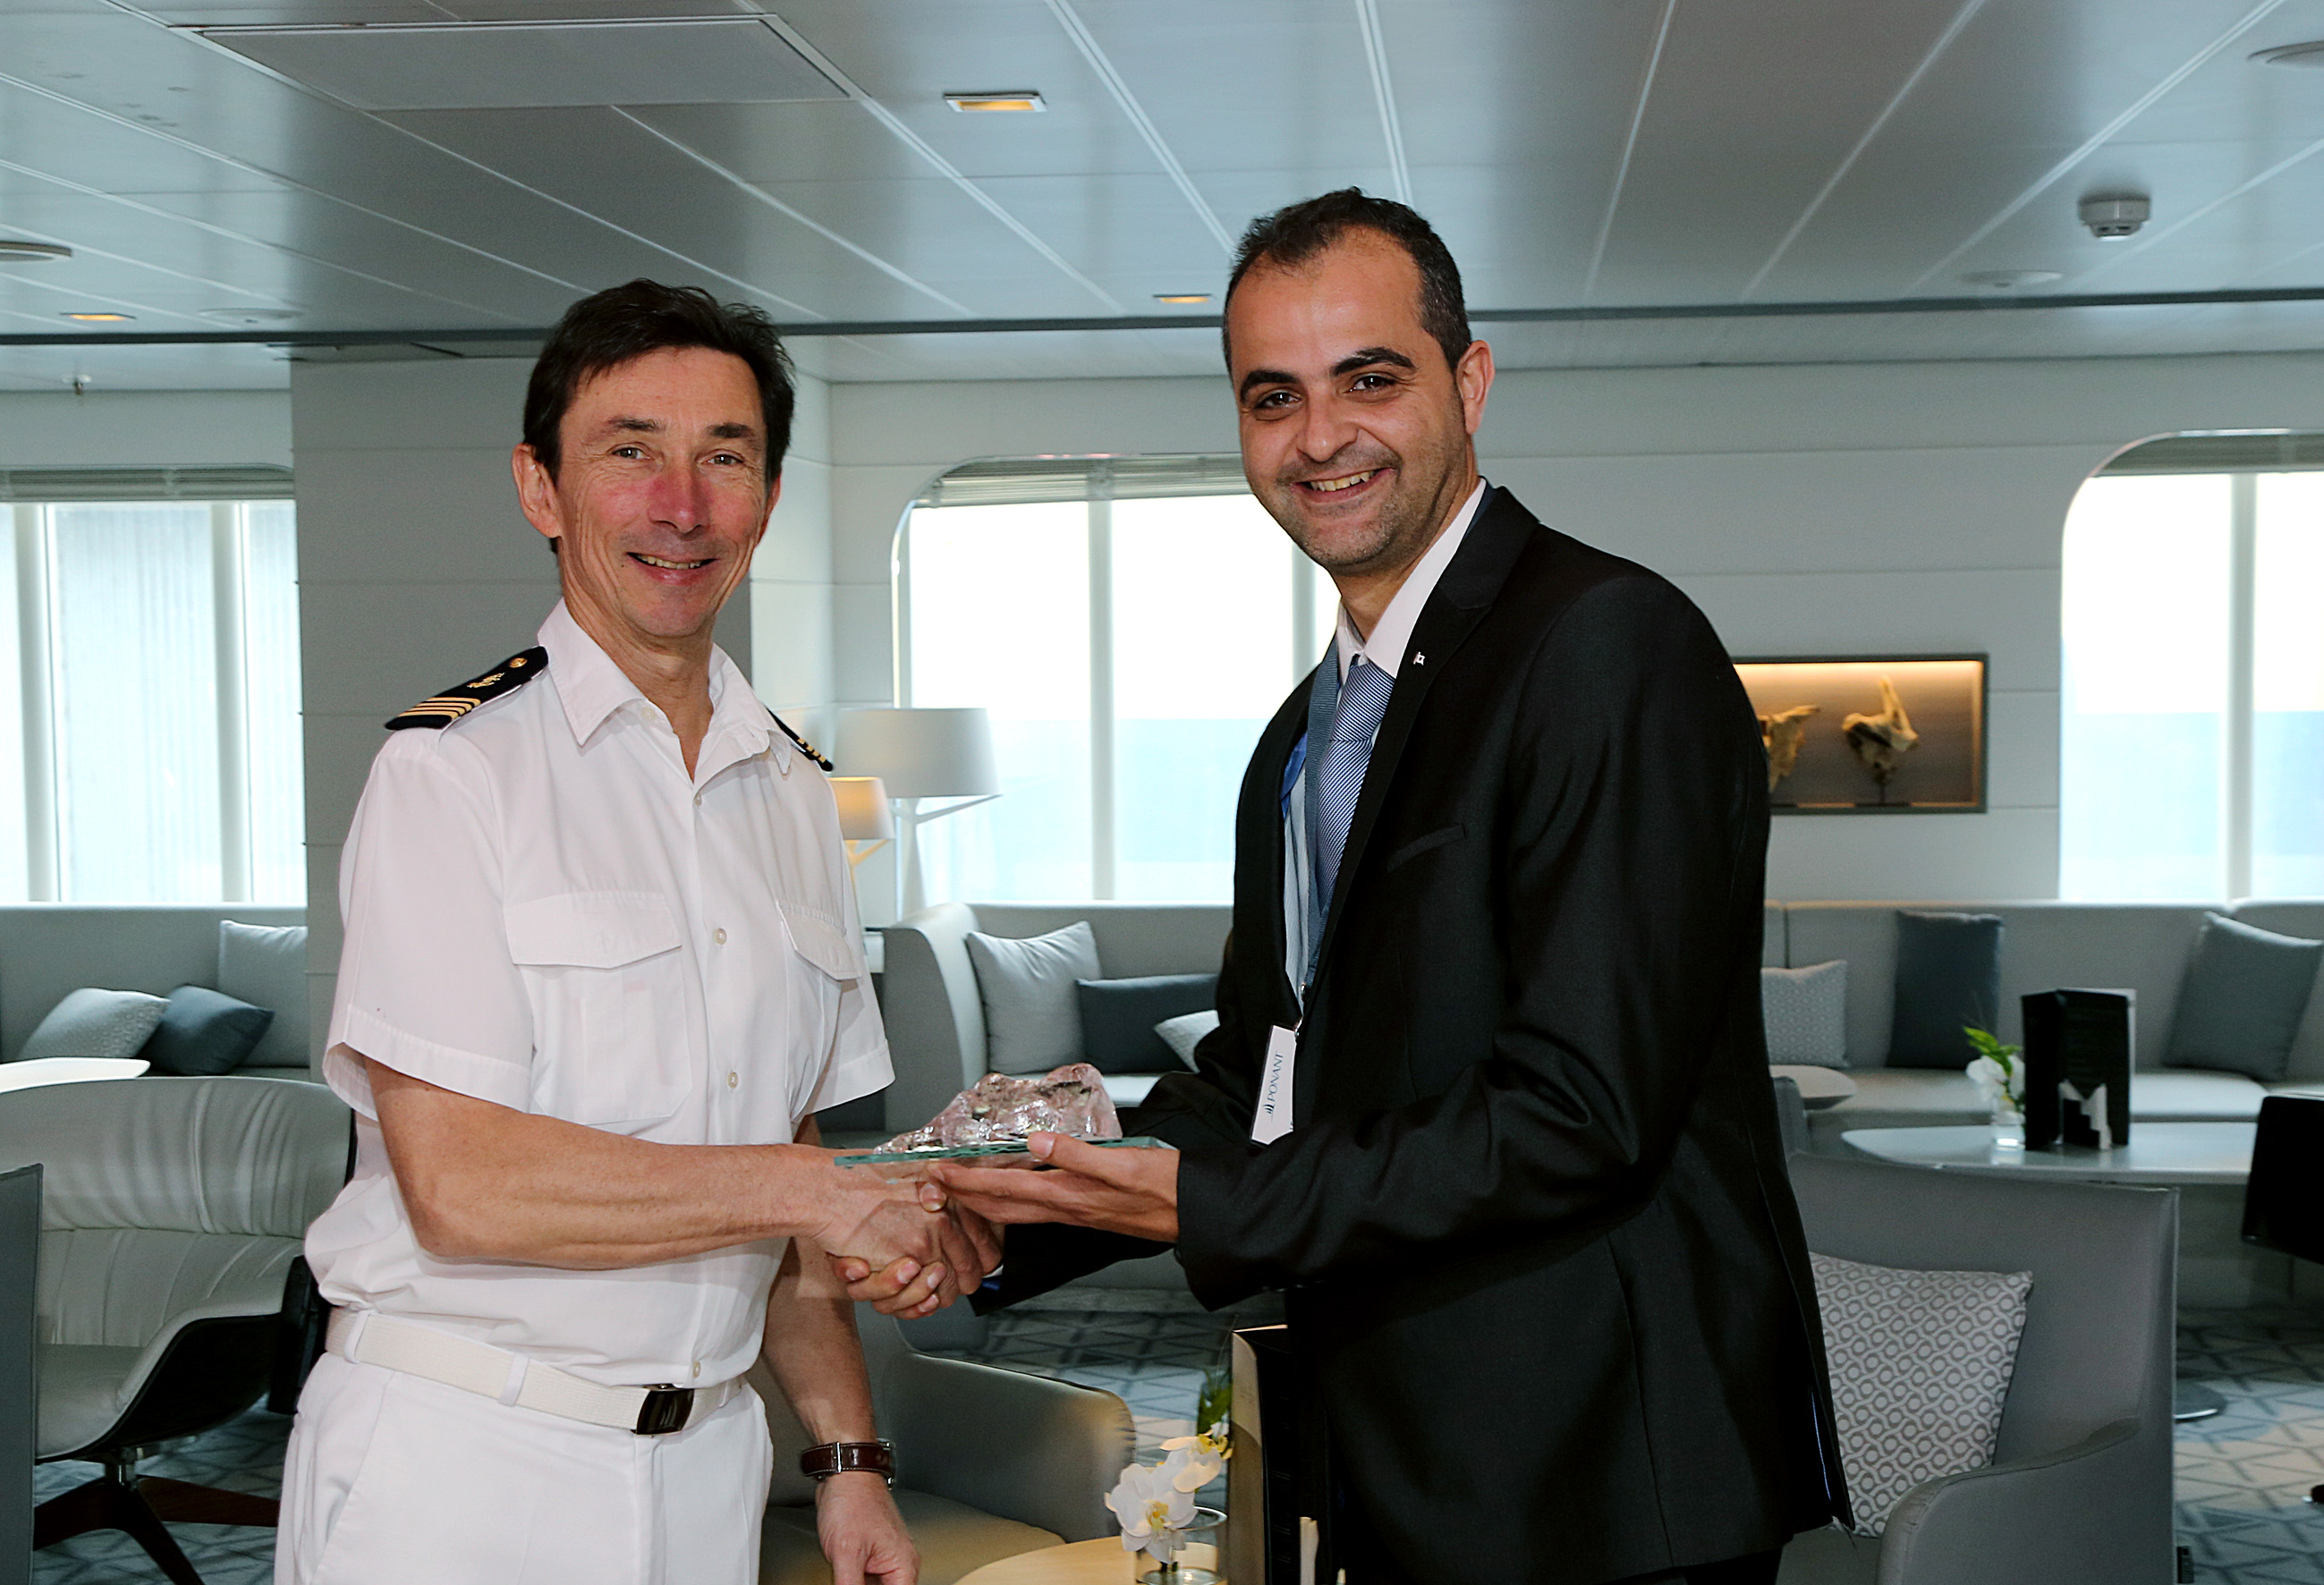 Ships Agency Manager Nico Bado, from Wilhelmsen, presents a gift to the Captain